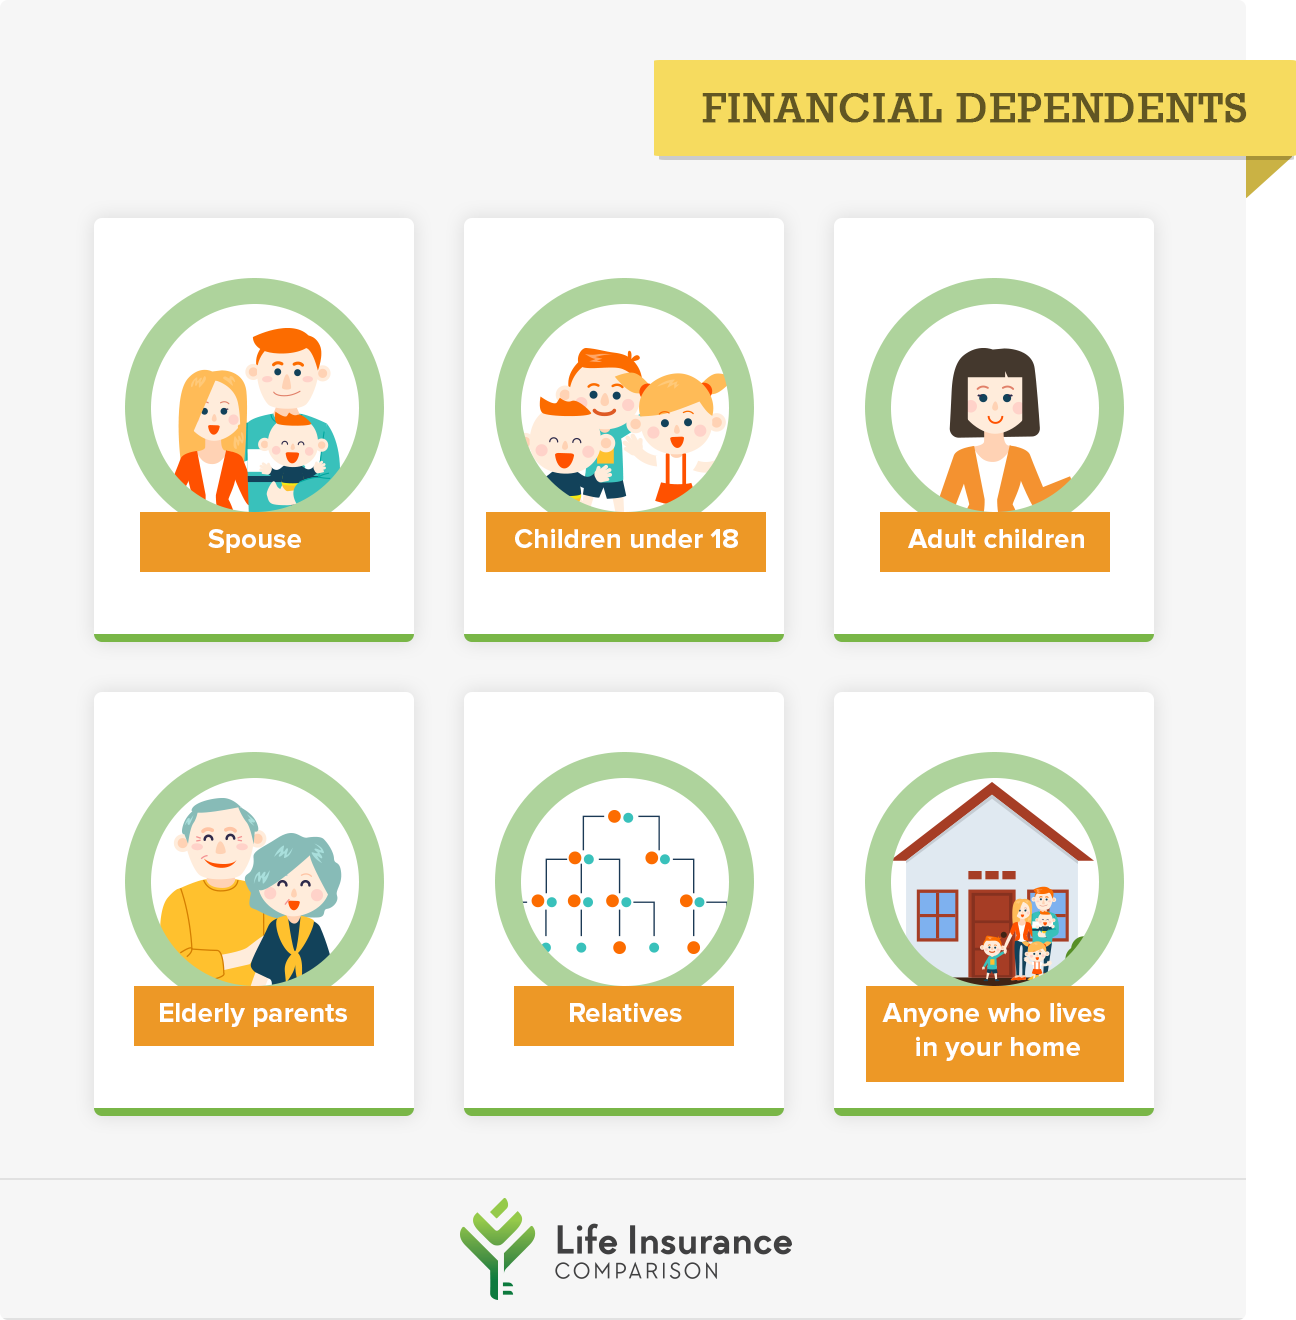 List of financial dependents